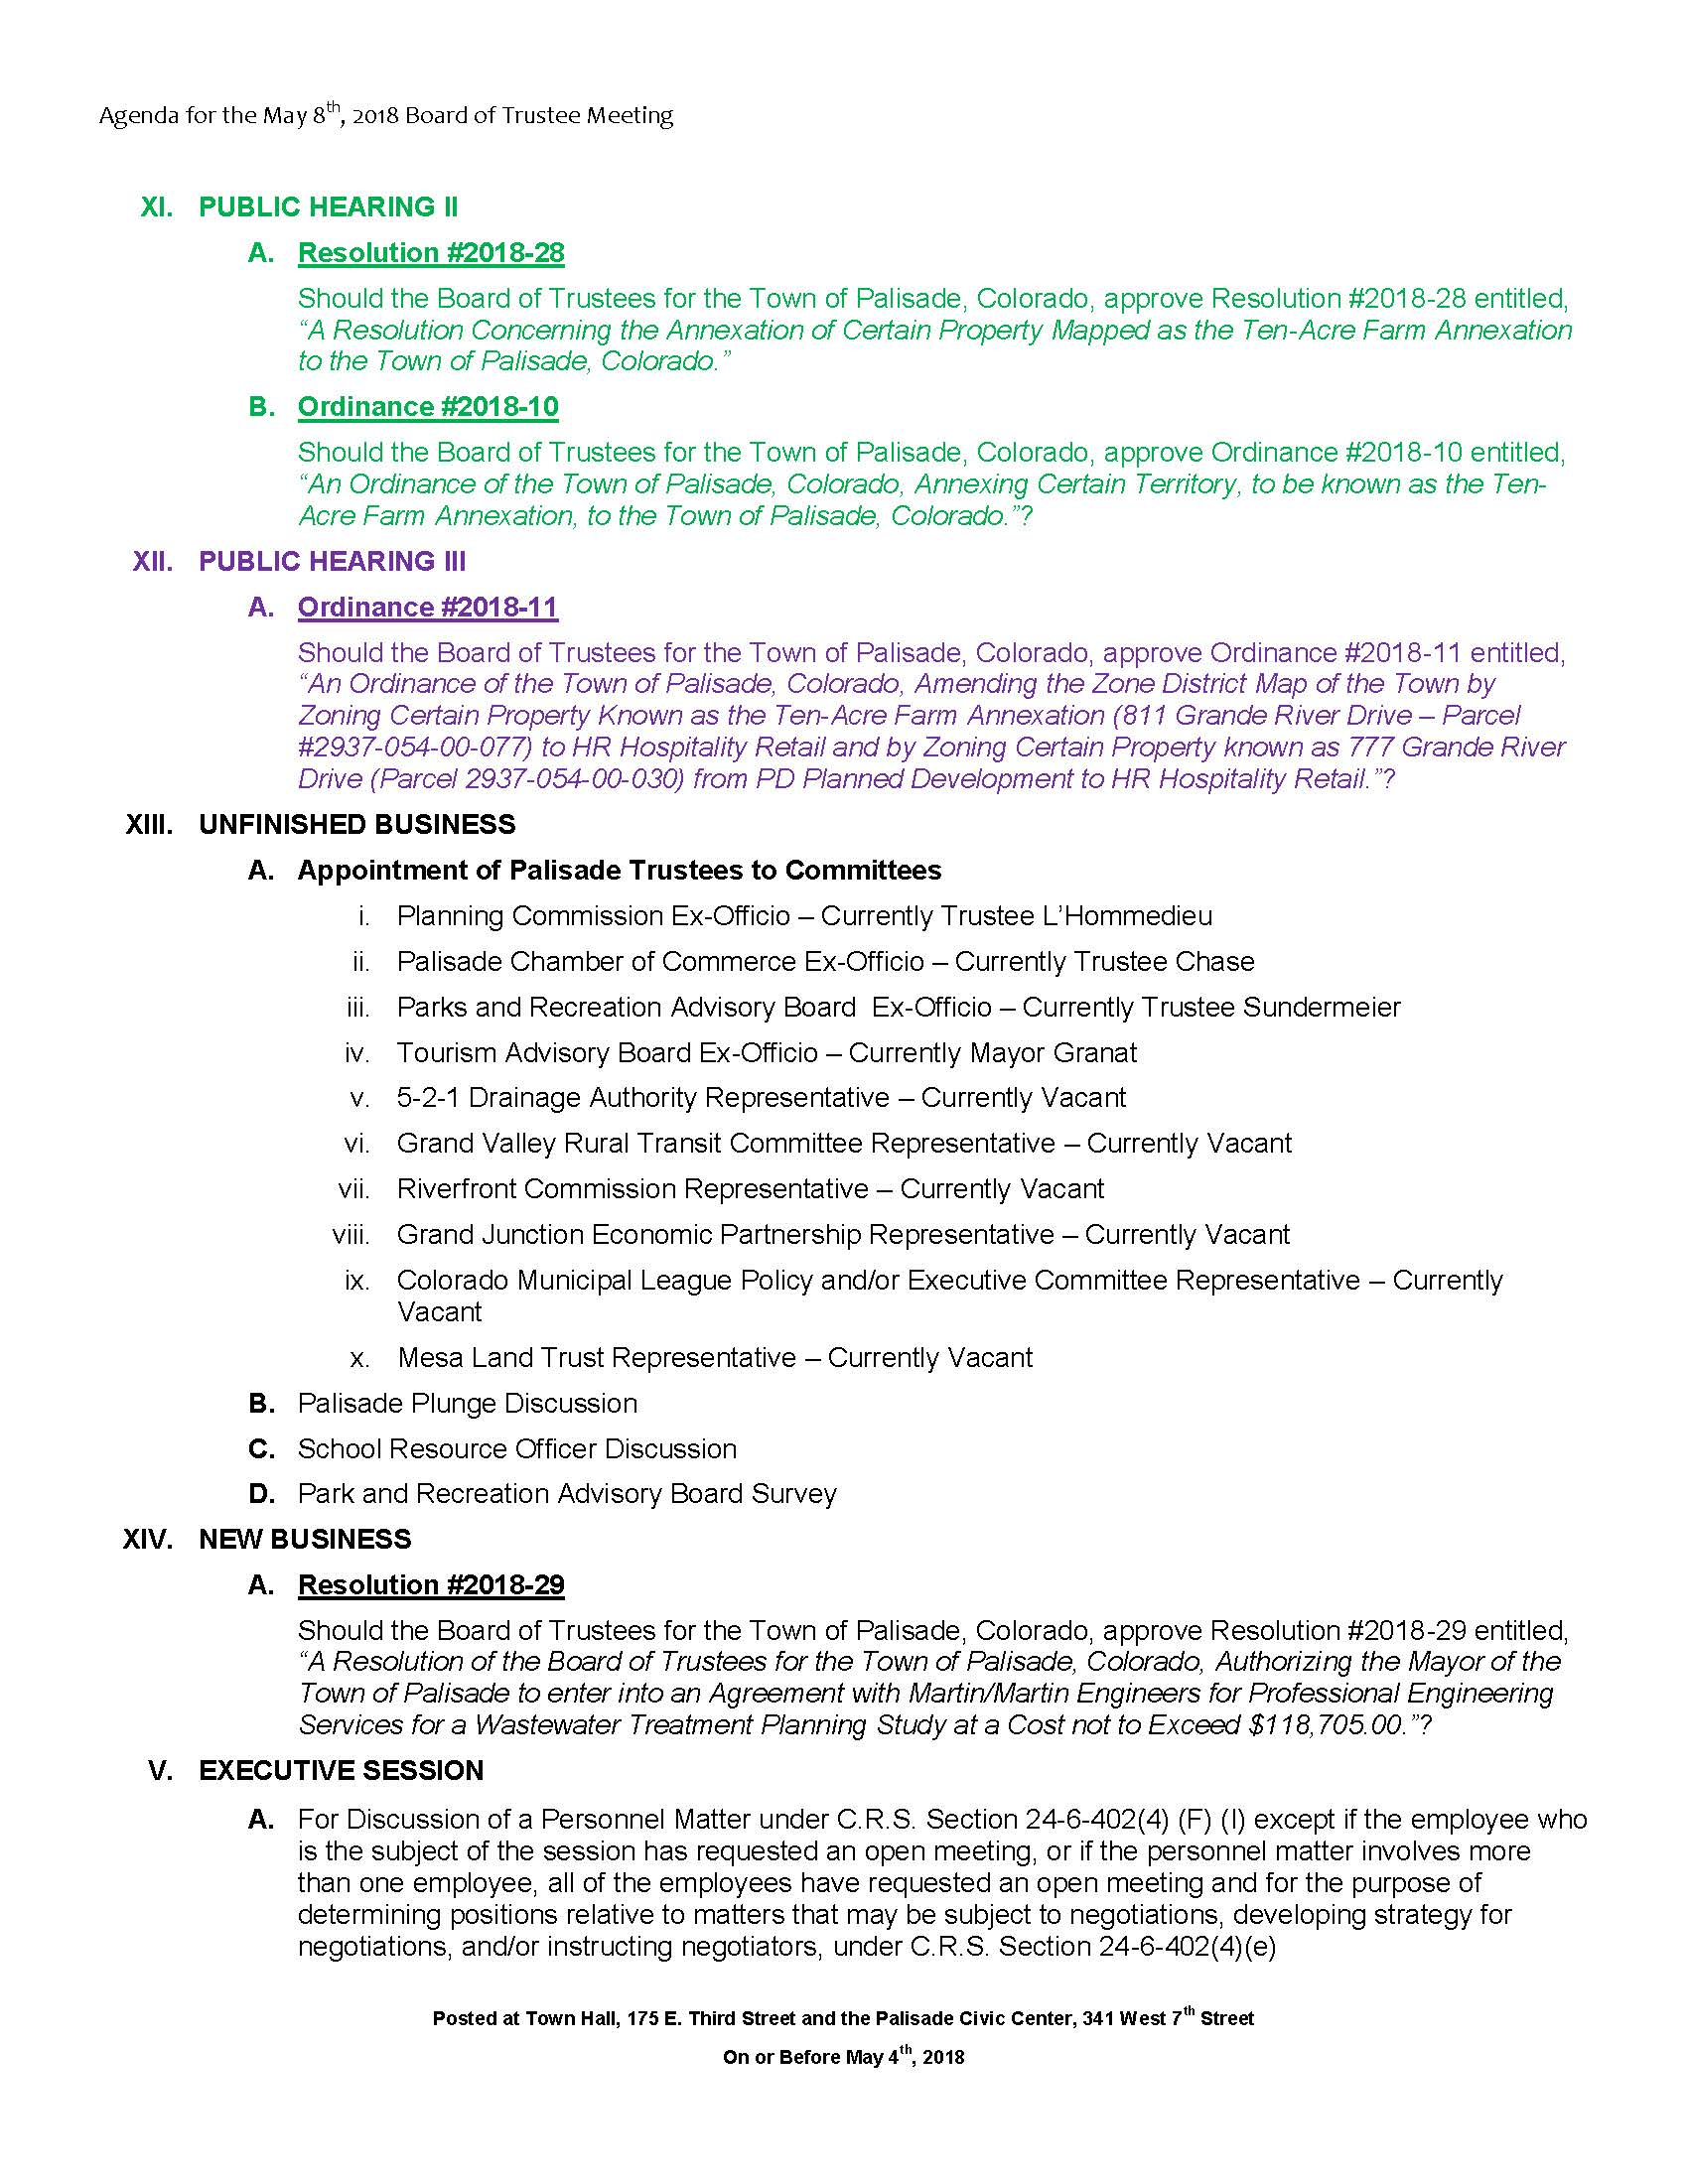 May 8th 2018 Board Meeting Agenda Page 2